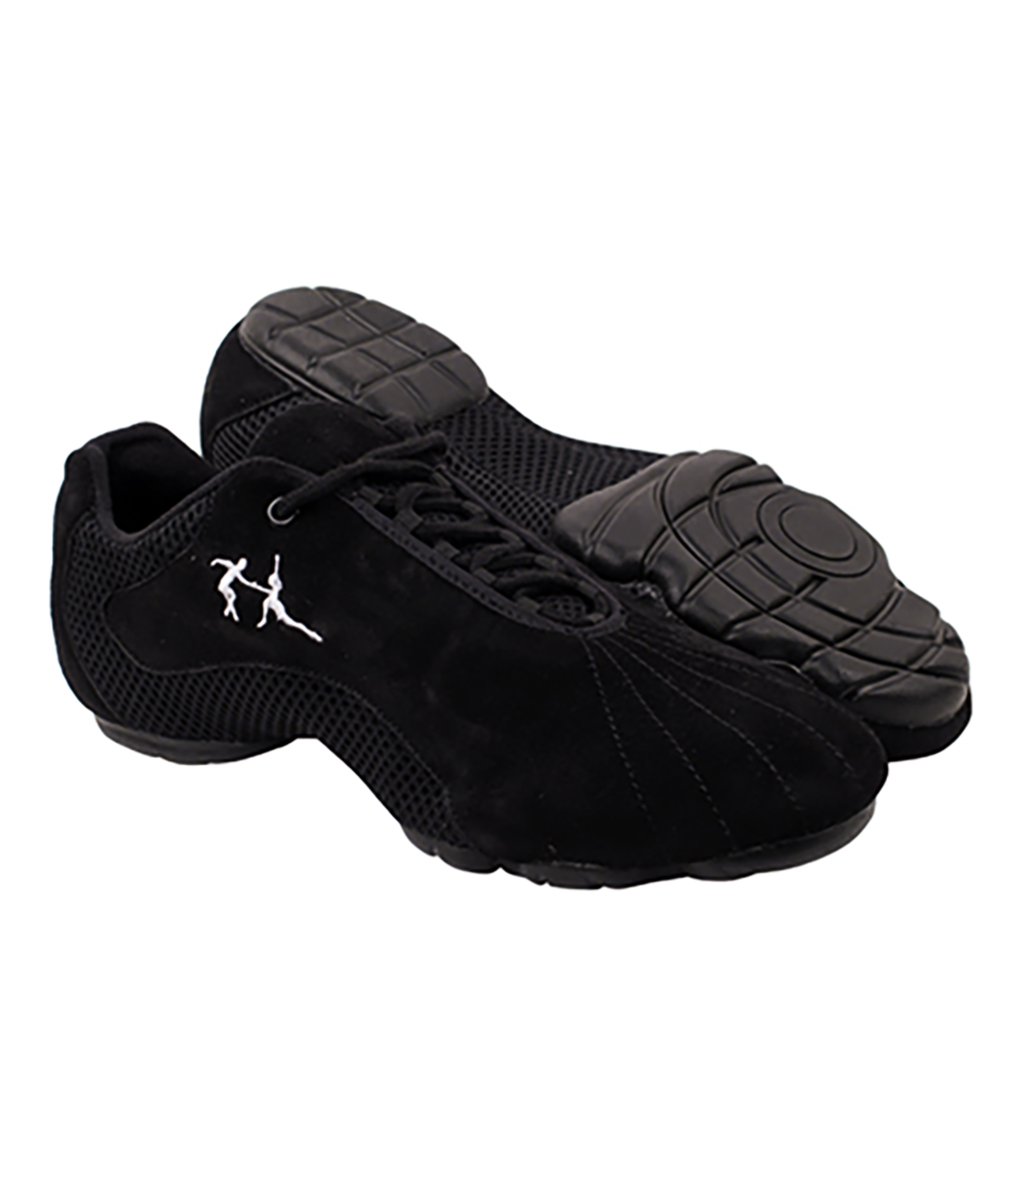 Very Fine Dance Sneakers - VFSN016 - Black Suede size 15 B(M) US Women / 13.5 D(M) US Men